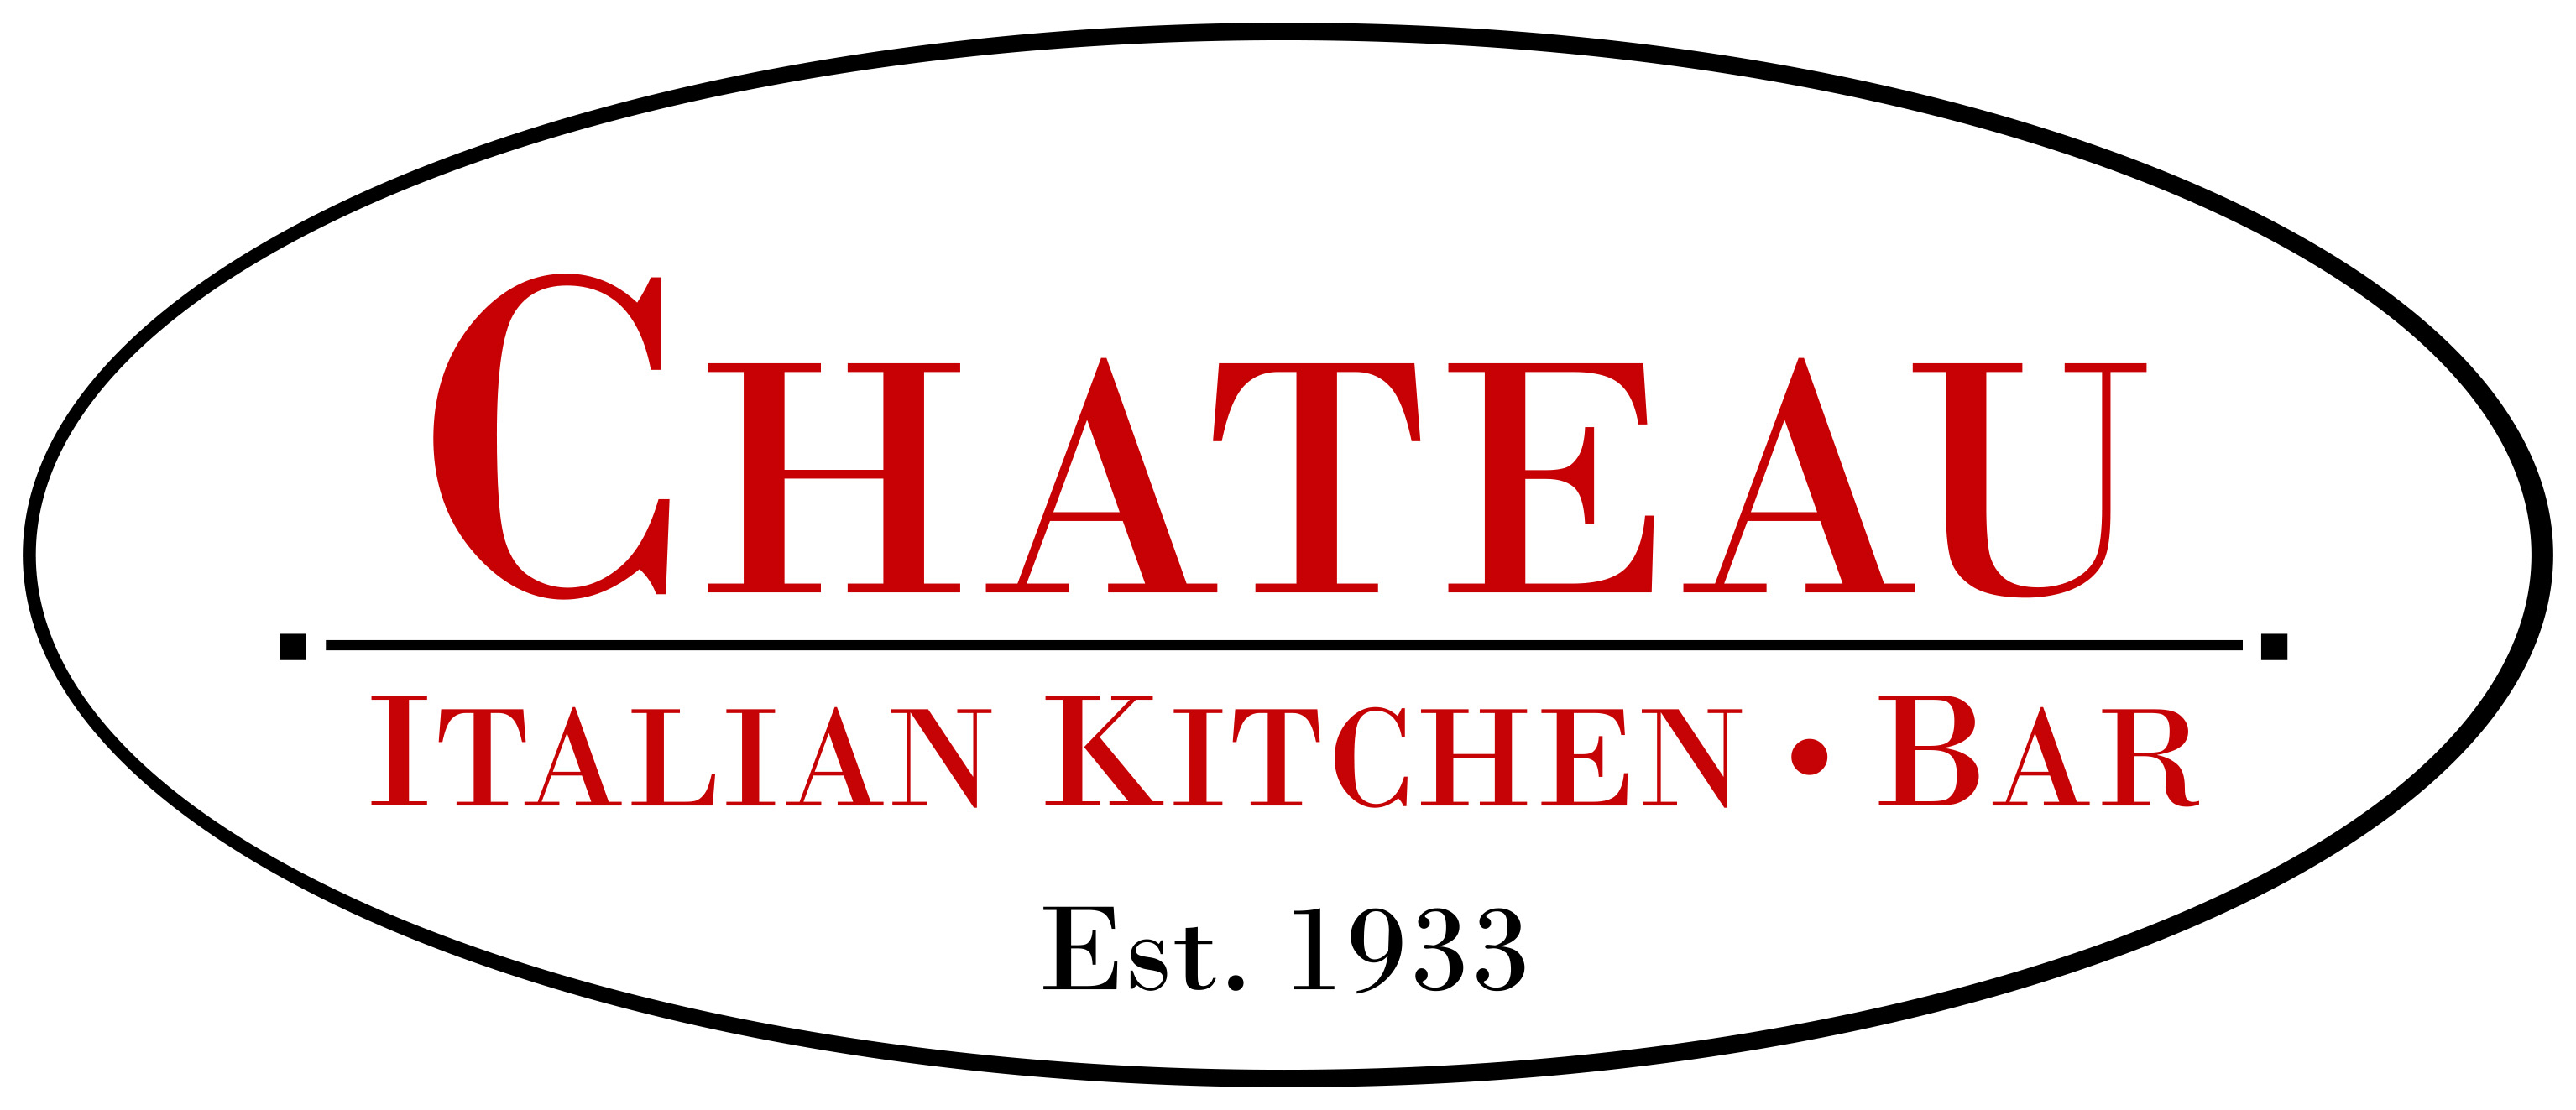 CHATEAU - CATERING